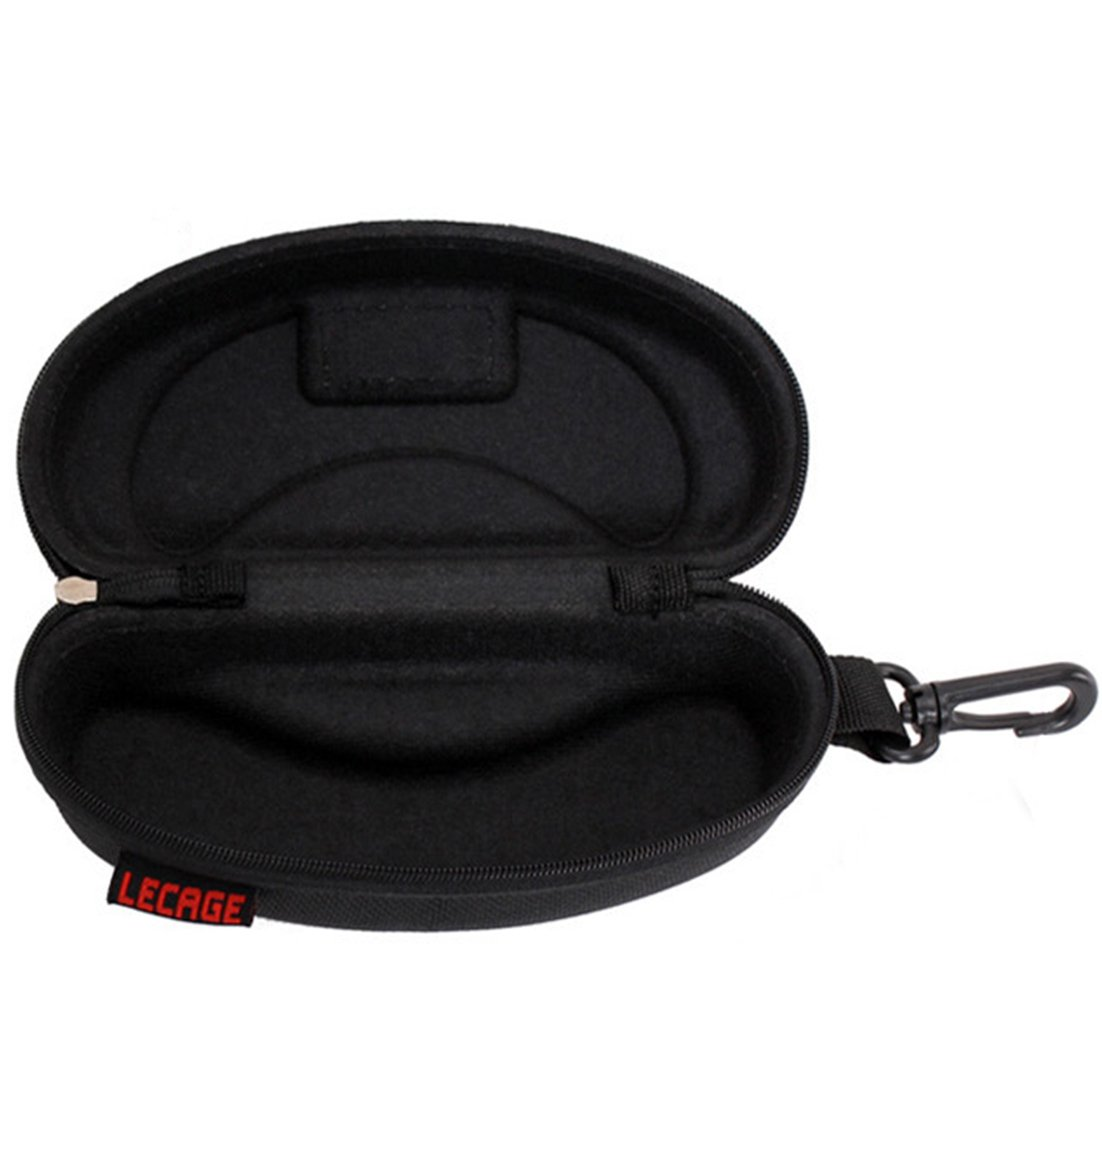 Brave Tour Protective Hard Carrying Case for Sunglasses Eyeglasses (Black-1) by Brave Tour